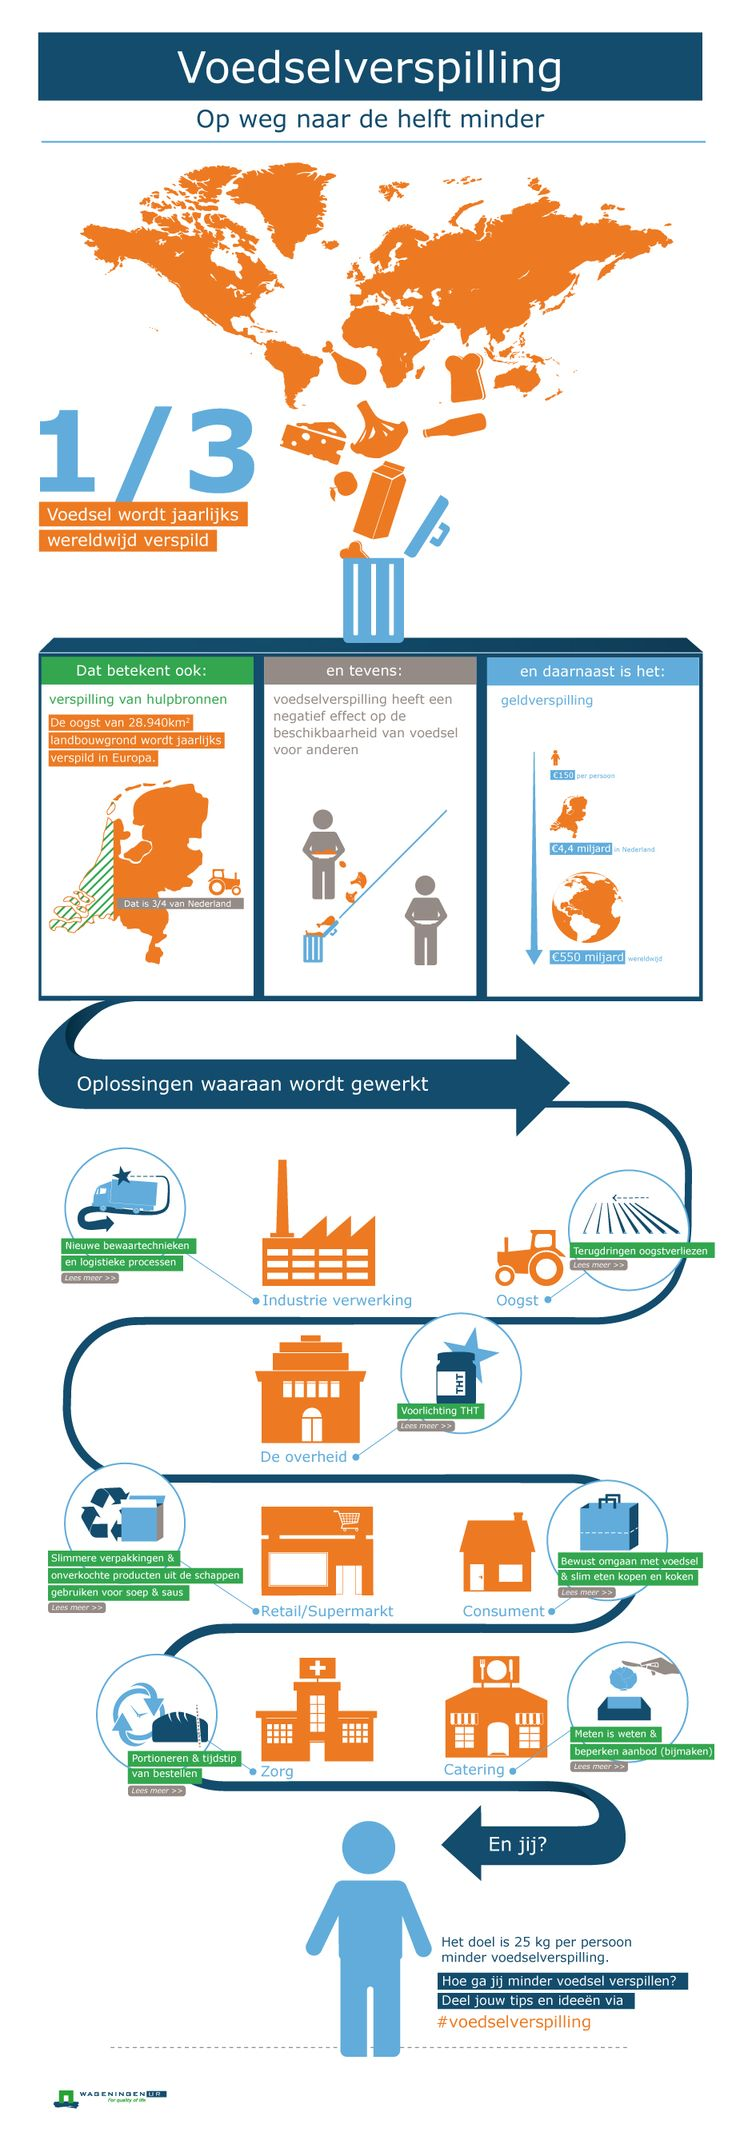 Voedselverspilling infographic